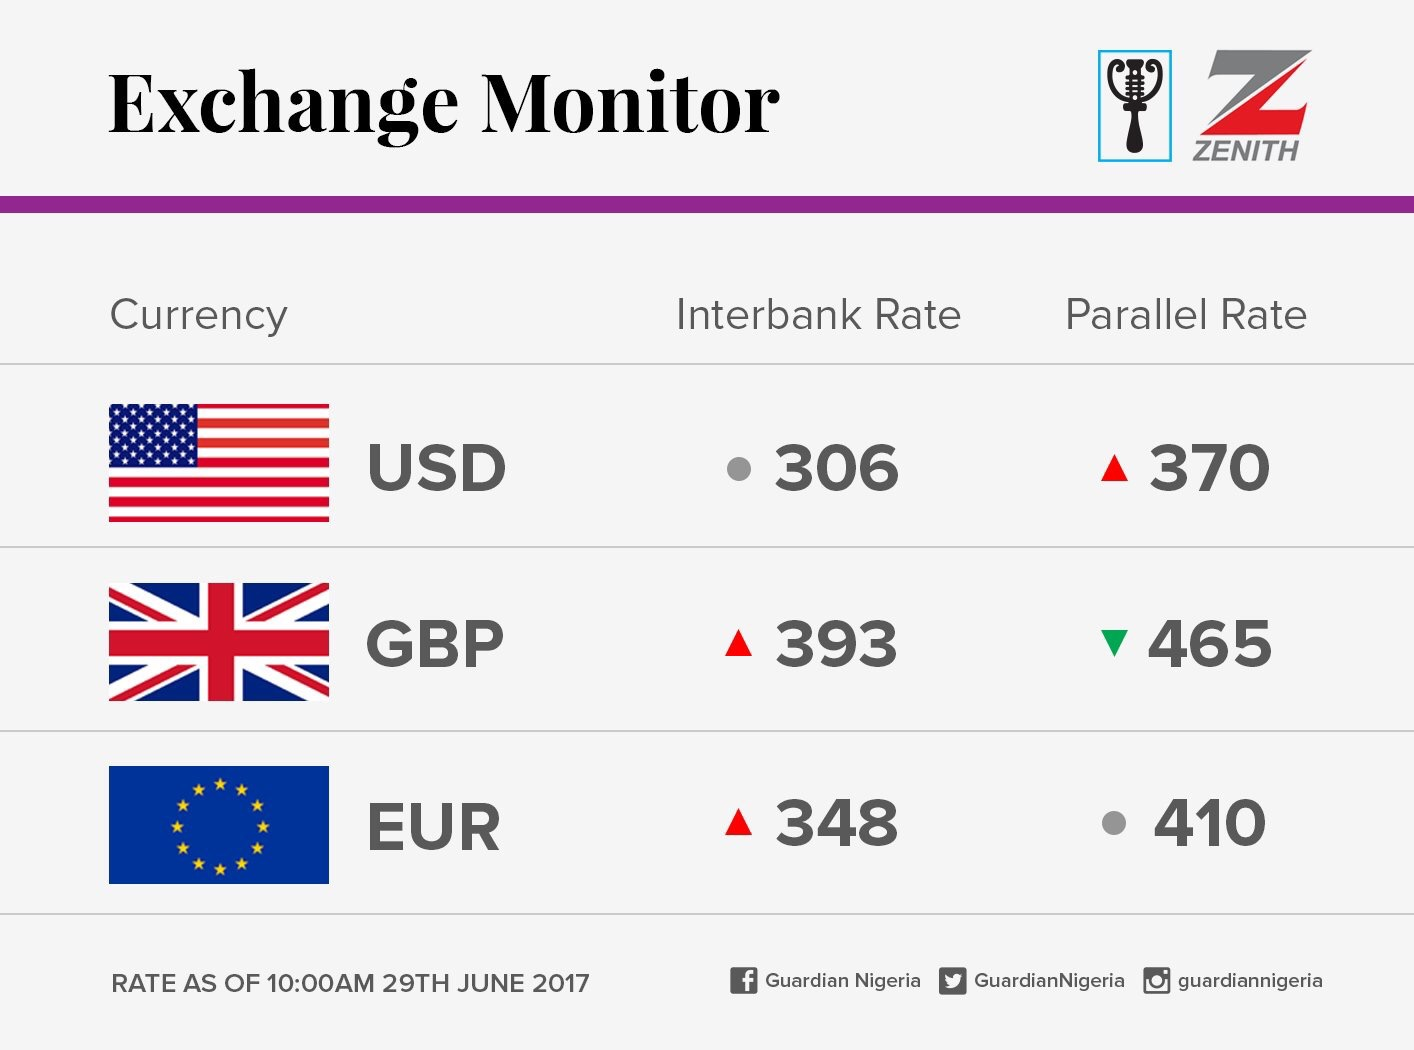 Exchange Rate For 29th June 2017